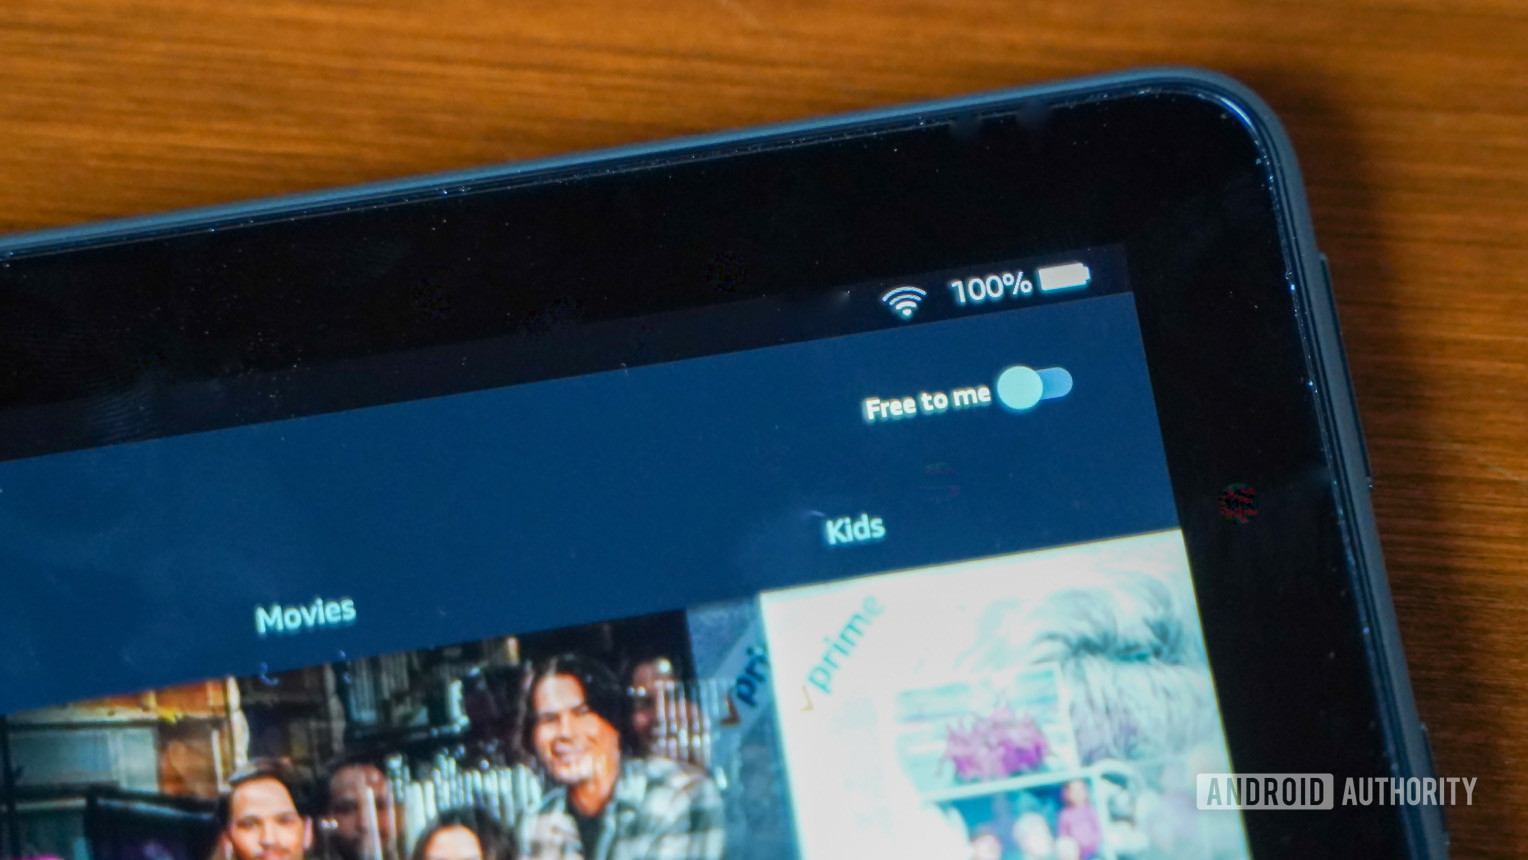 The Amazon Fire HD 10 Plus screen showing battery indicator.